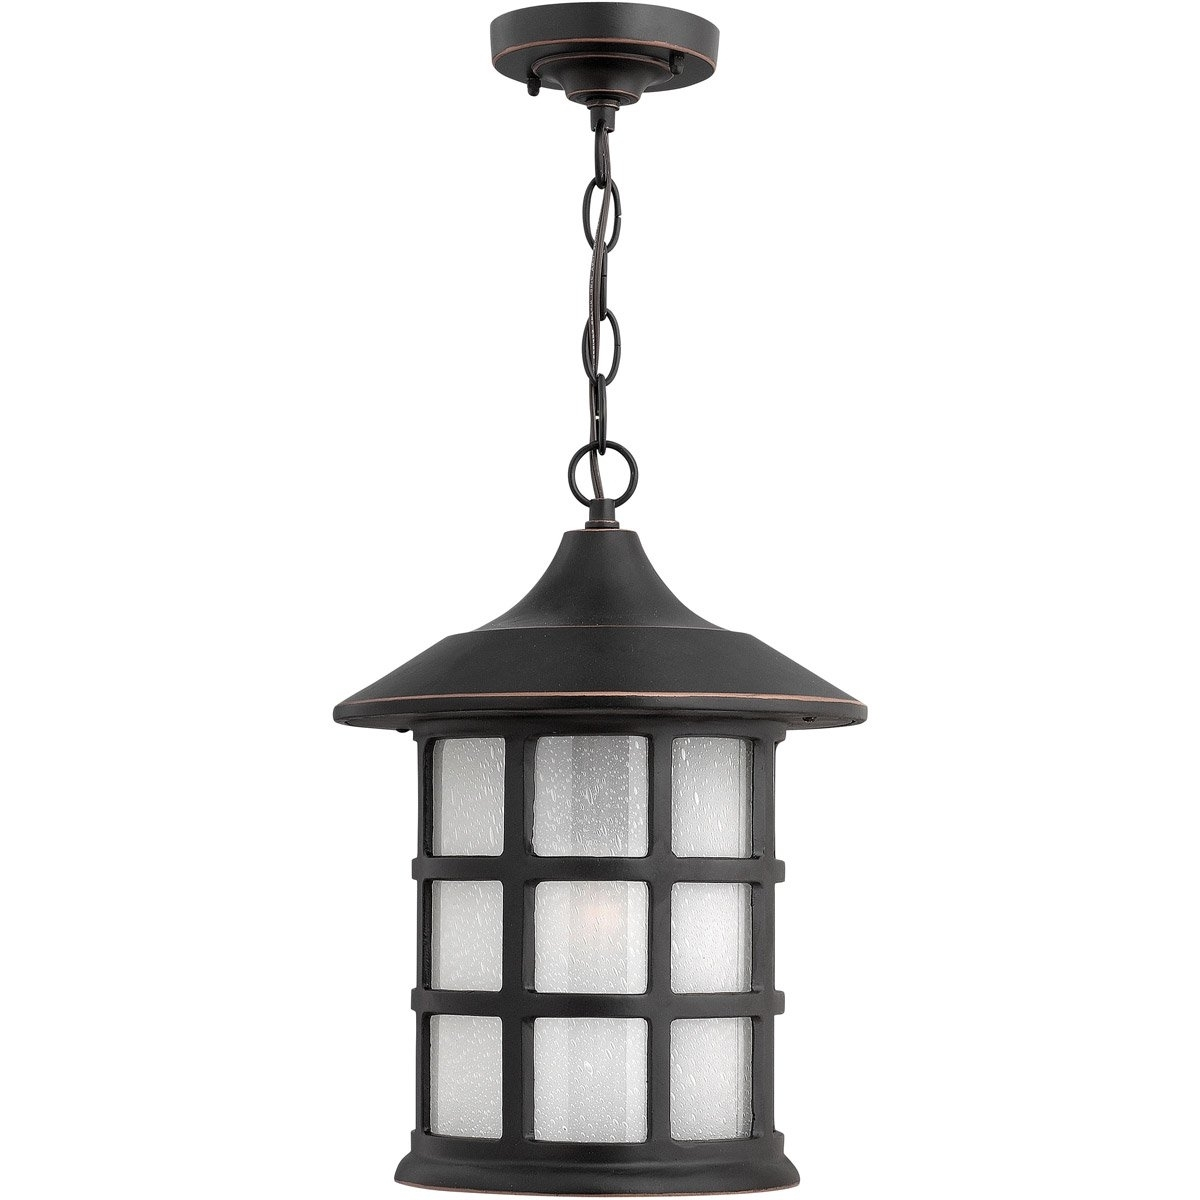 Trendy Hinkley Outdoor Hanging Lights Pertaining To Hinkley Lighting 1802Op Freeport 1 Light 10 Inch Olde Penny Outdoor (View 19 of 20)